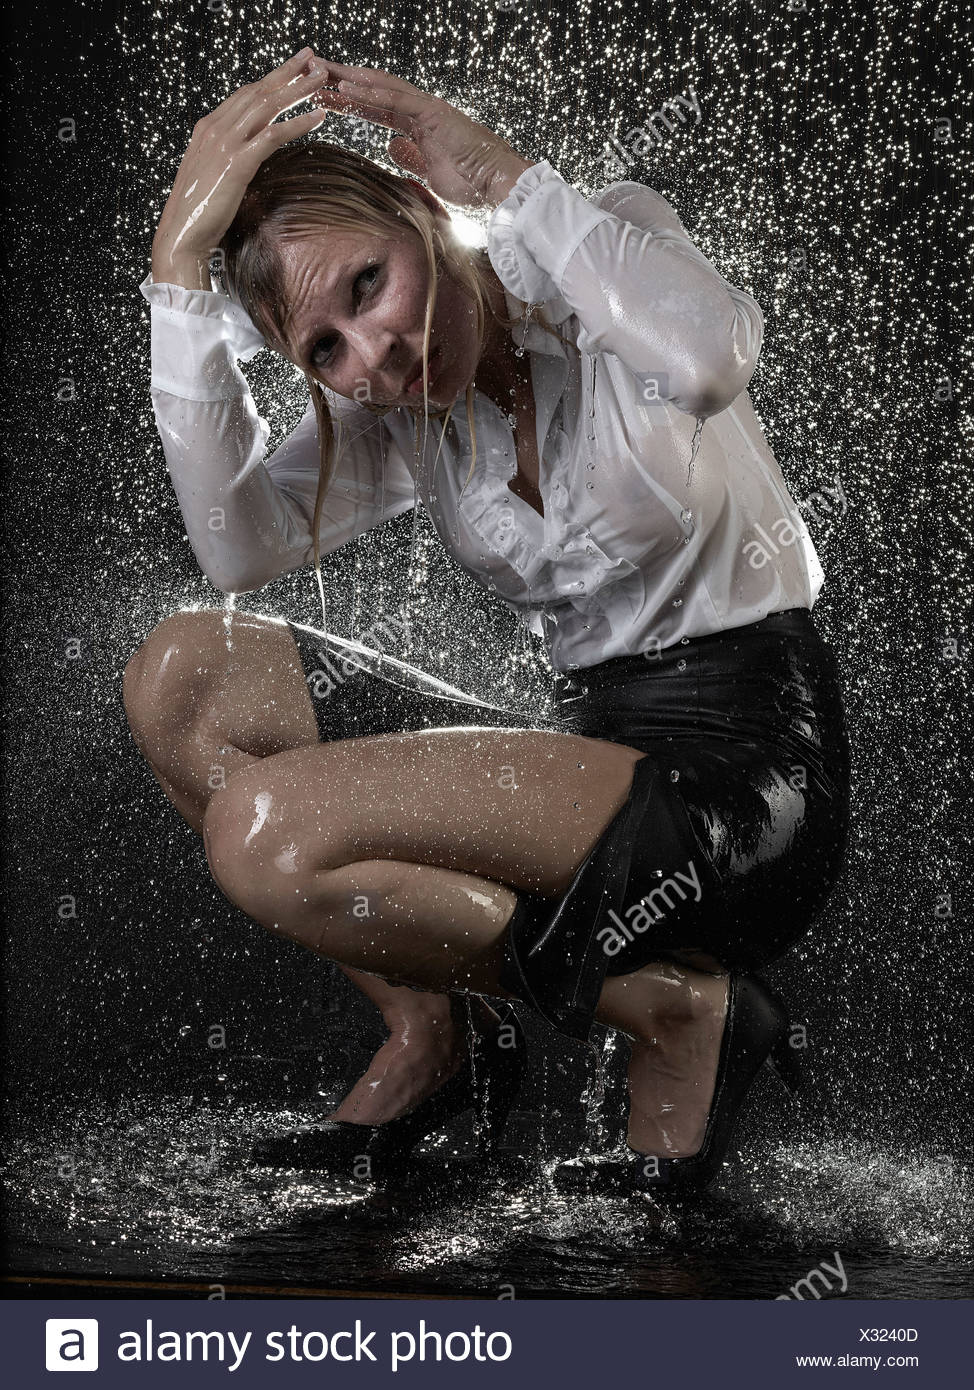 Businesswoman crouching in rain - Stock Image